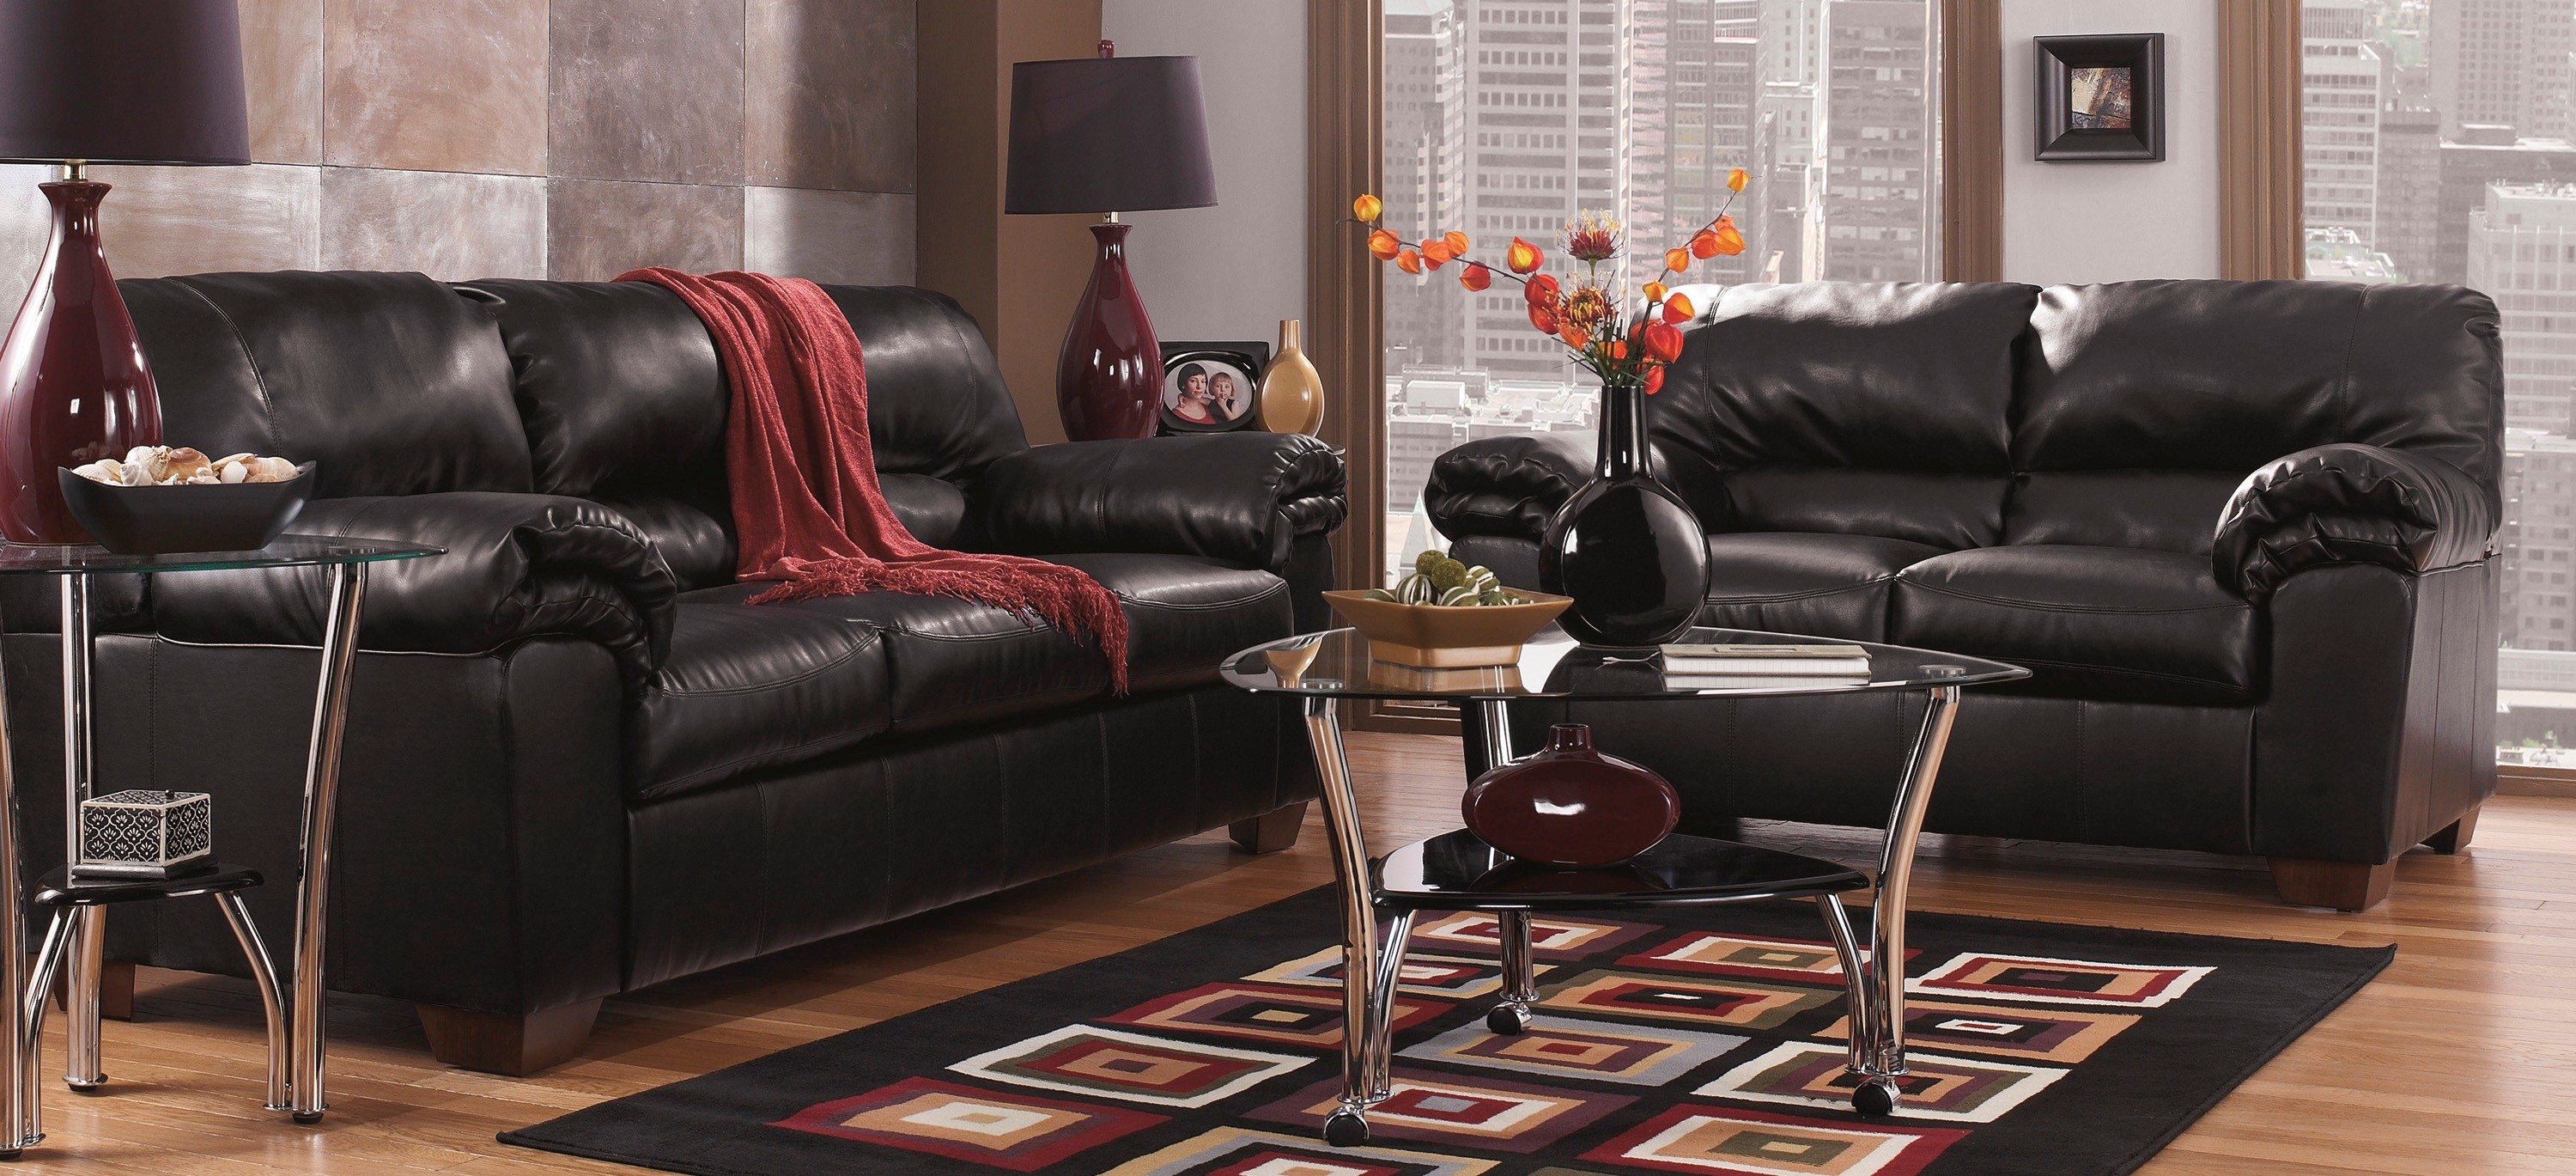 Commando Black Living Room Set Marjen Of Chicago